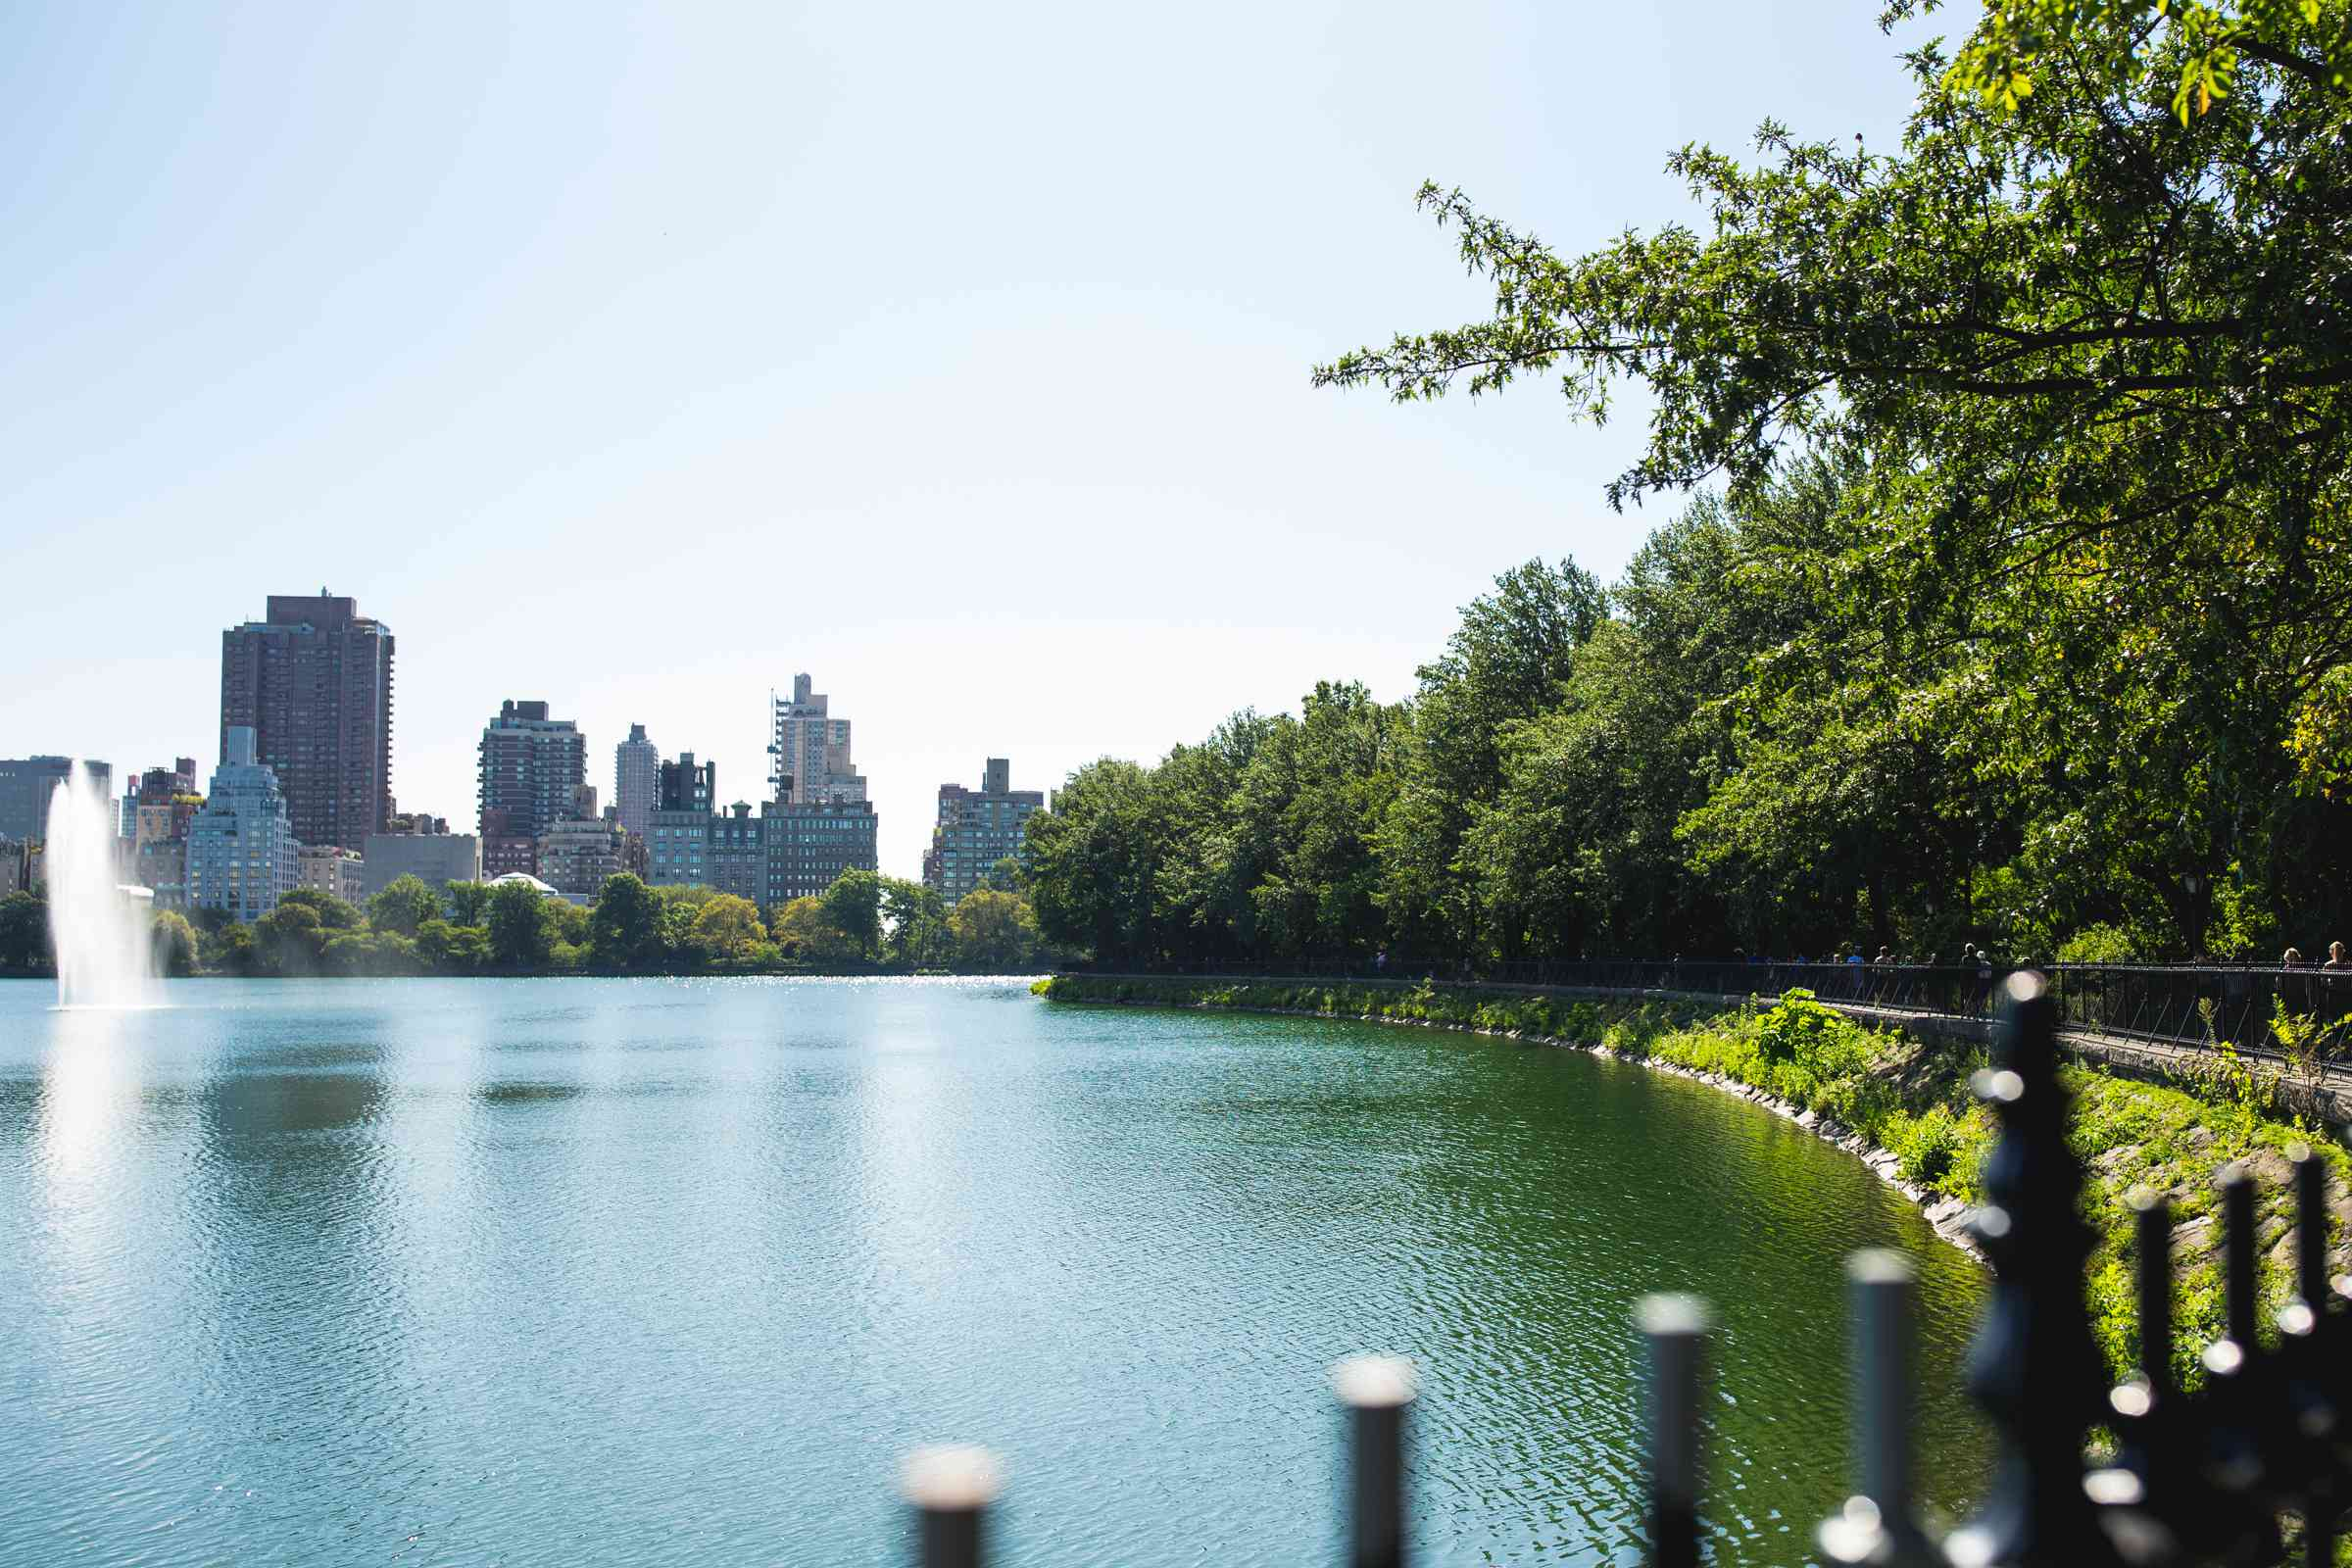 The Reservoir in Central Park, NYC